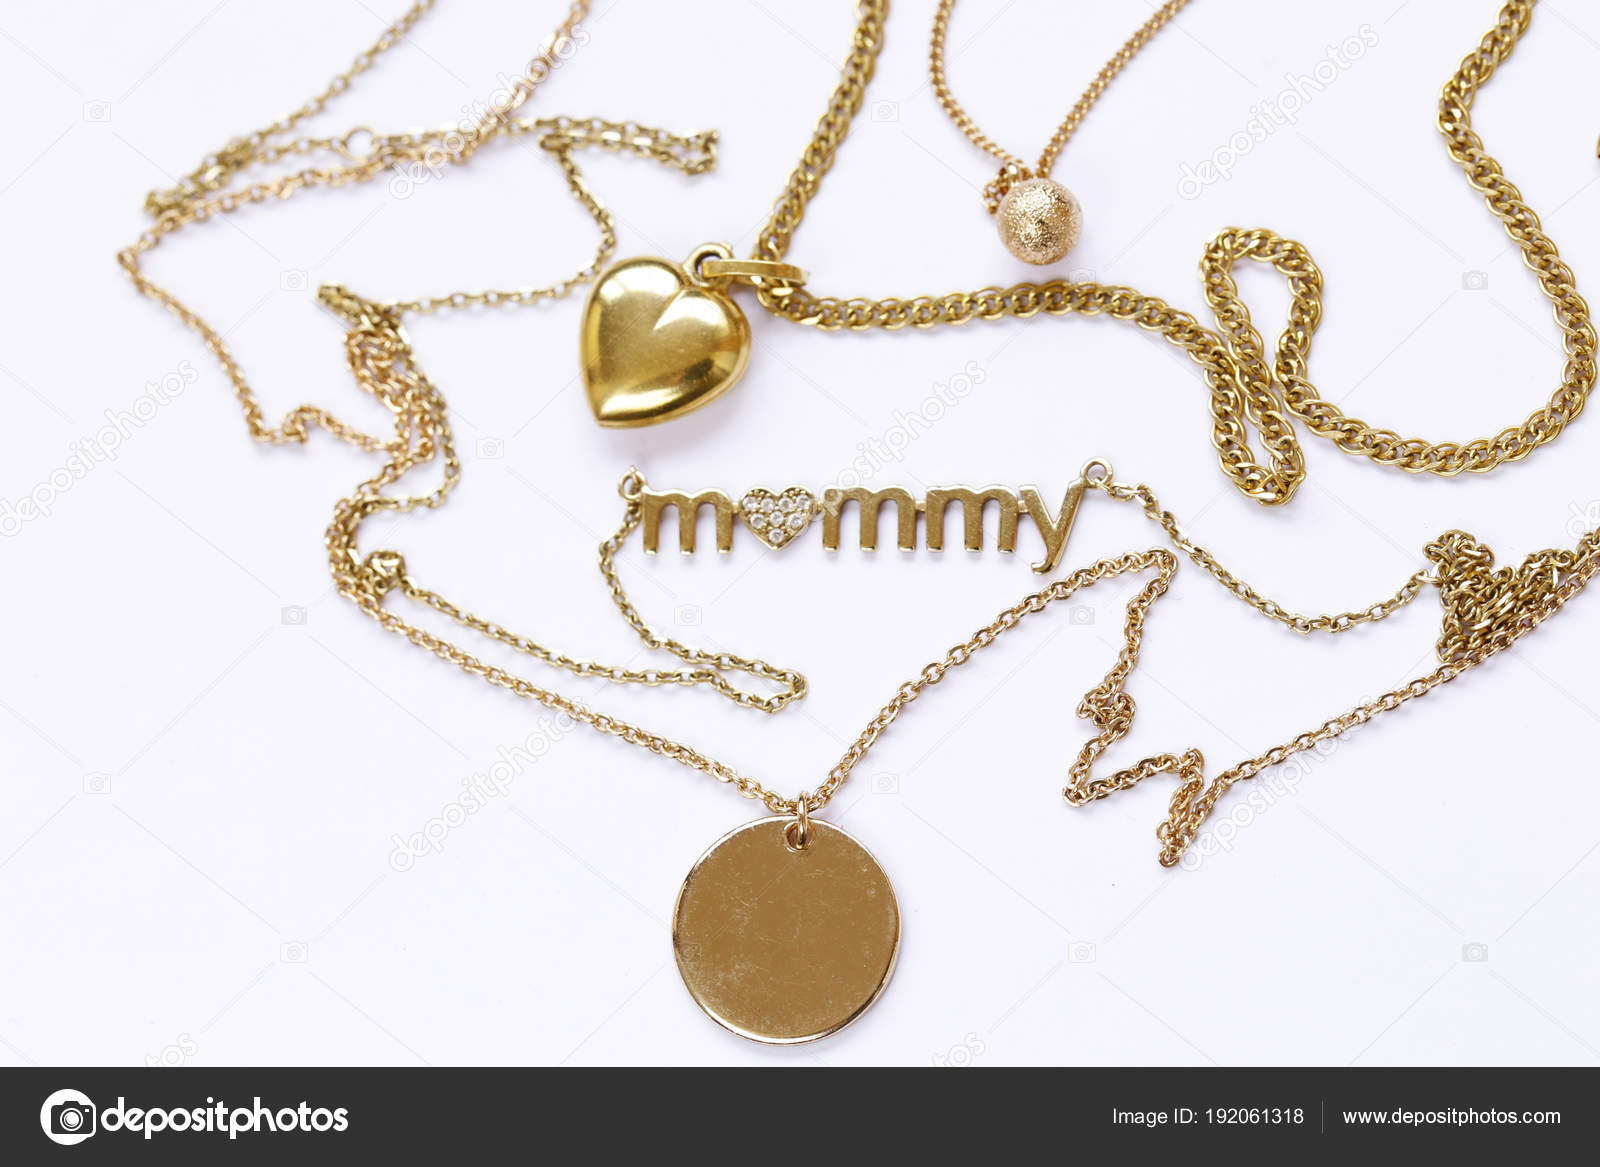 Gold chains necklaces pendants stock photo dream79 192061318 gold chains necklaces pendants stock photo aloadofball Image collections